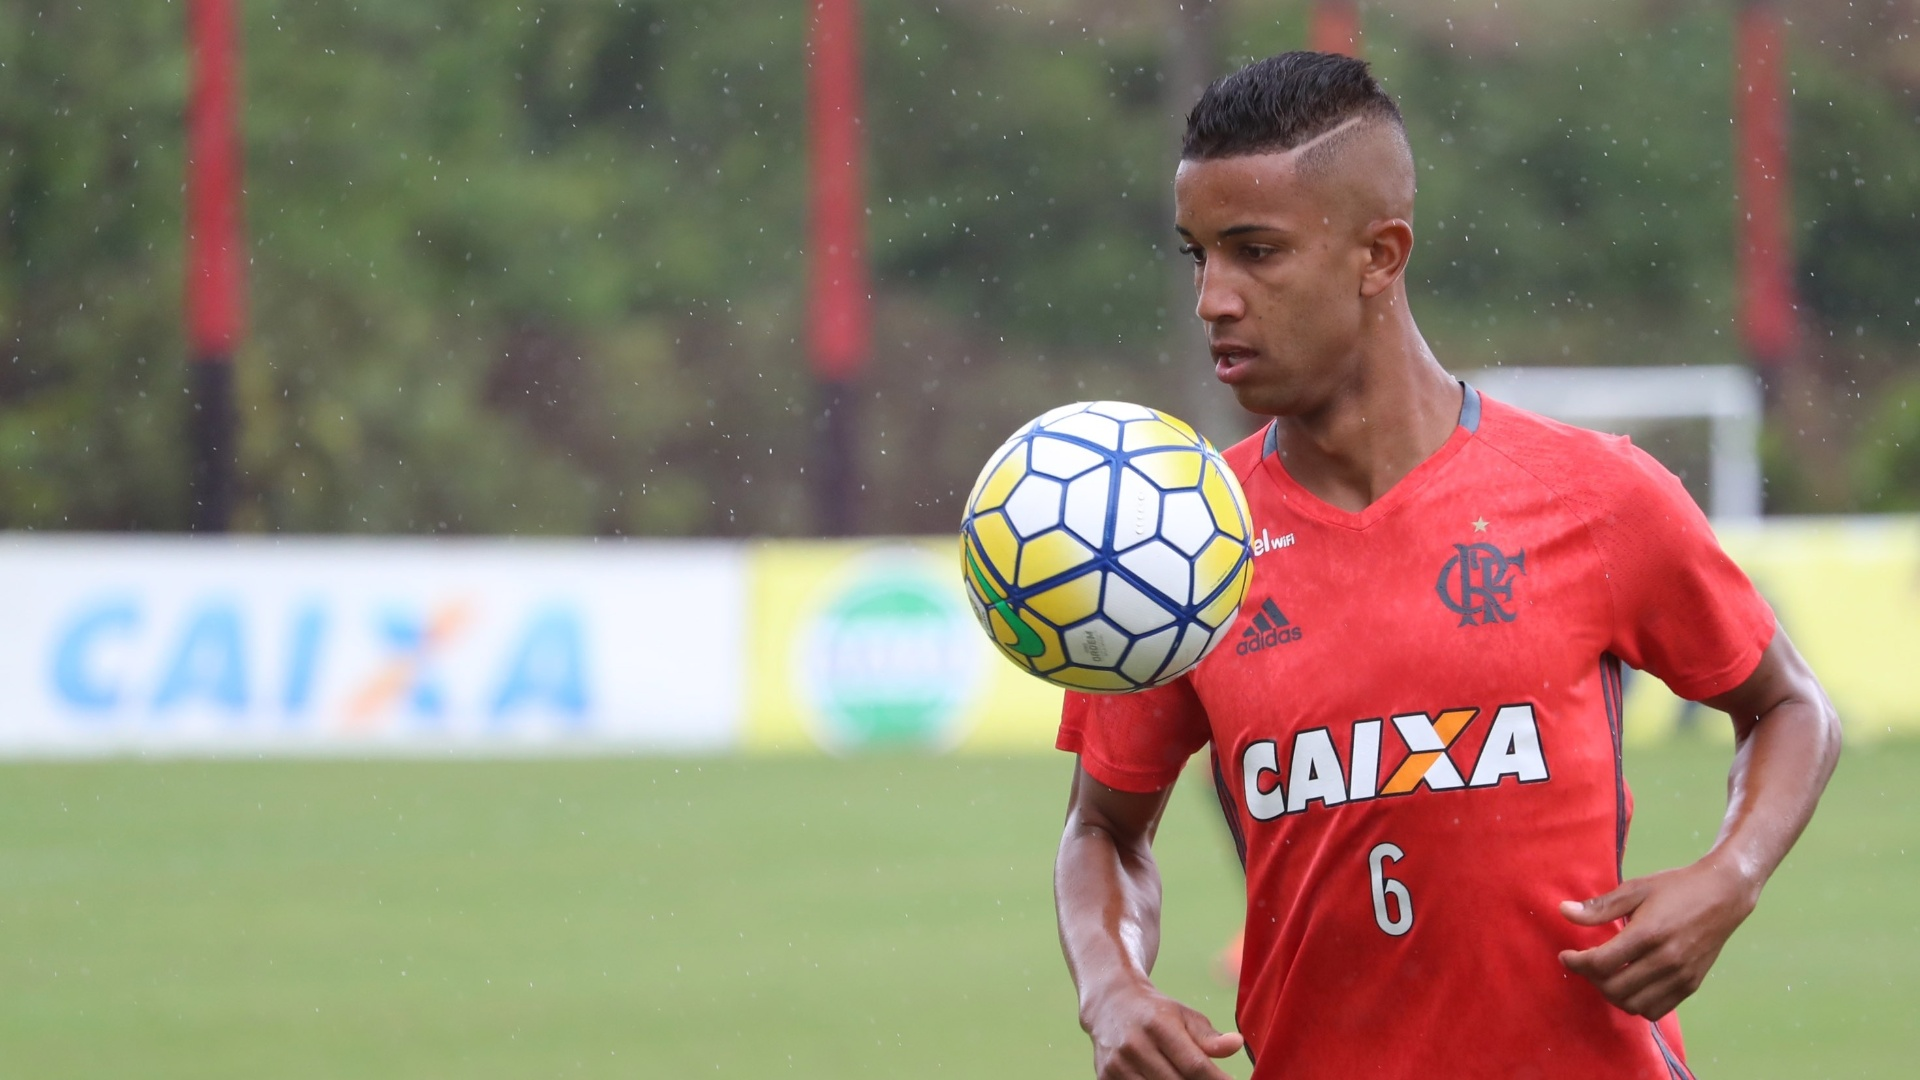 Lateral esquerdo do Flamengo, Jorge é alvo constante do mercado europeu